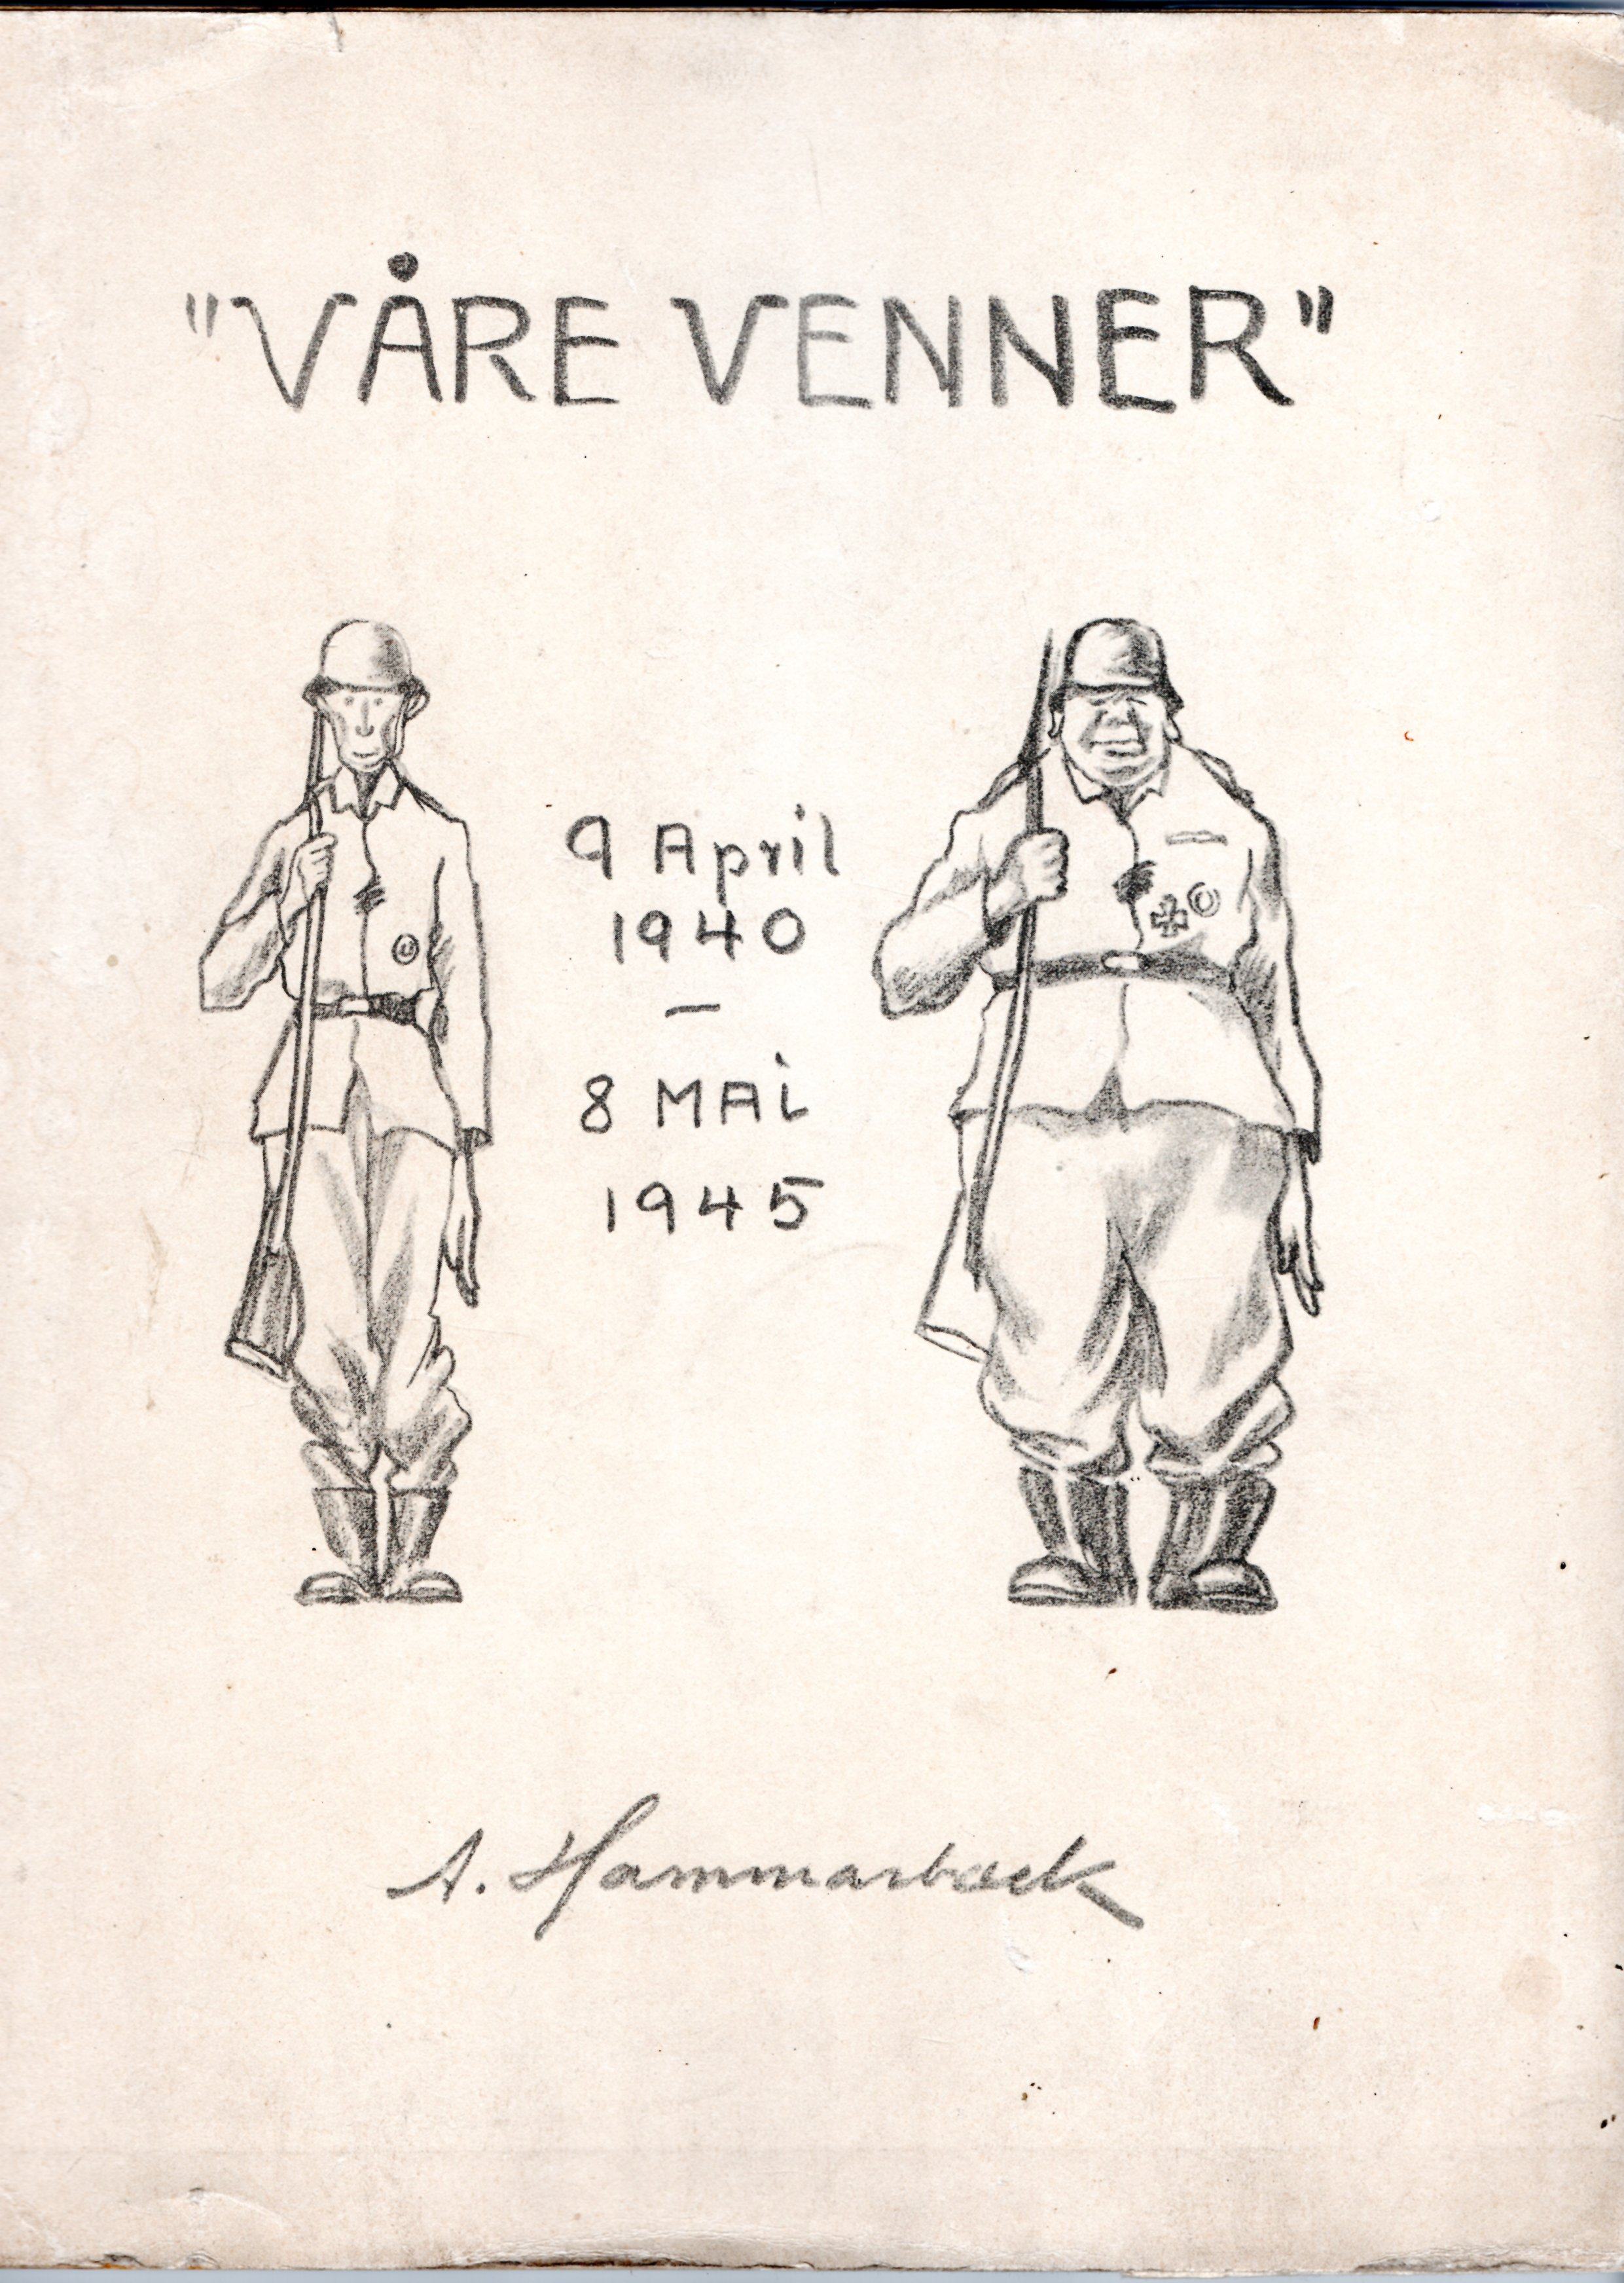 Image for Vre Venner - 9 April 1940 - 8 Mai 1945